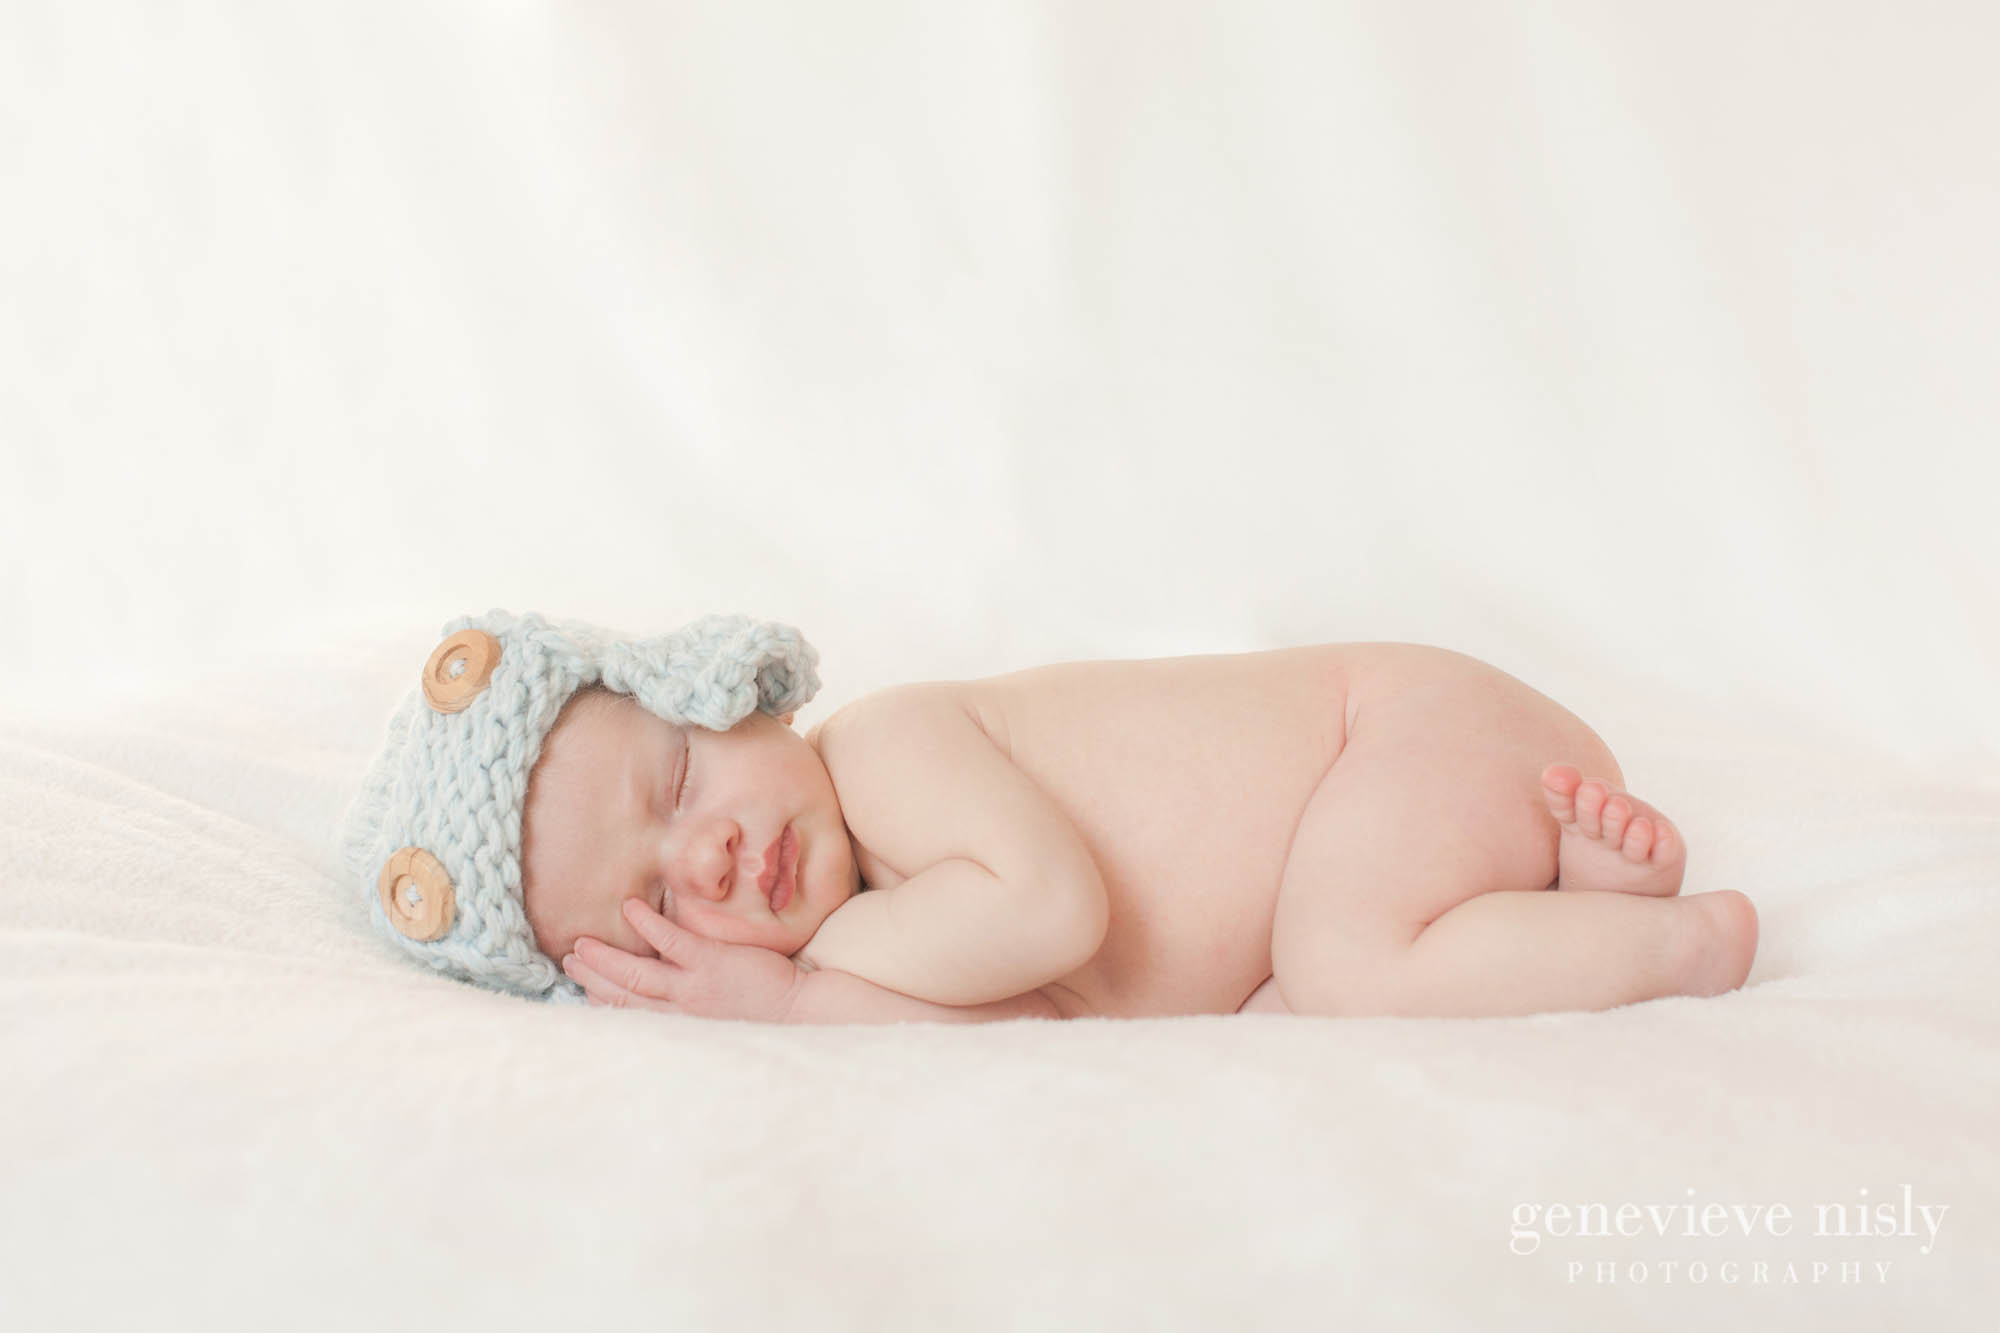 Akron, Baby, Cleveland, Copyright Genevieve Nisly Photography, Ohio, Portraits